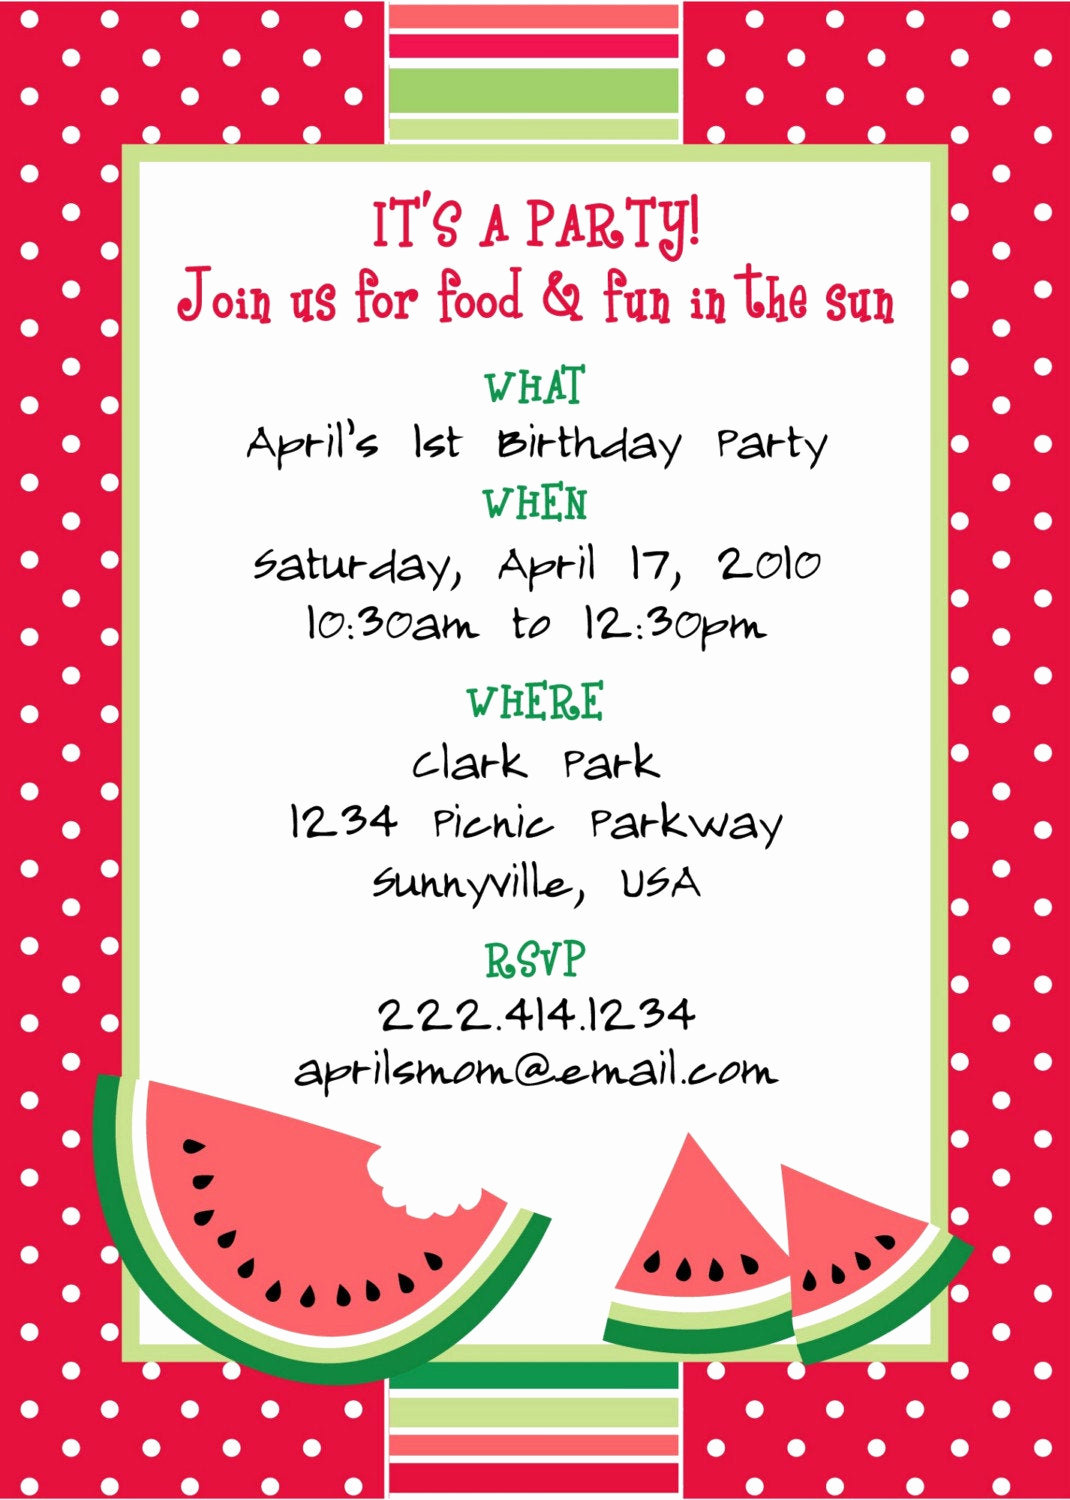 Picnic Invitation Templates Free Elegant Printable Watermelon themed Party Invitation